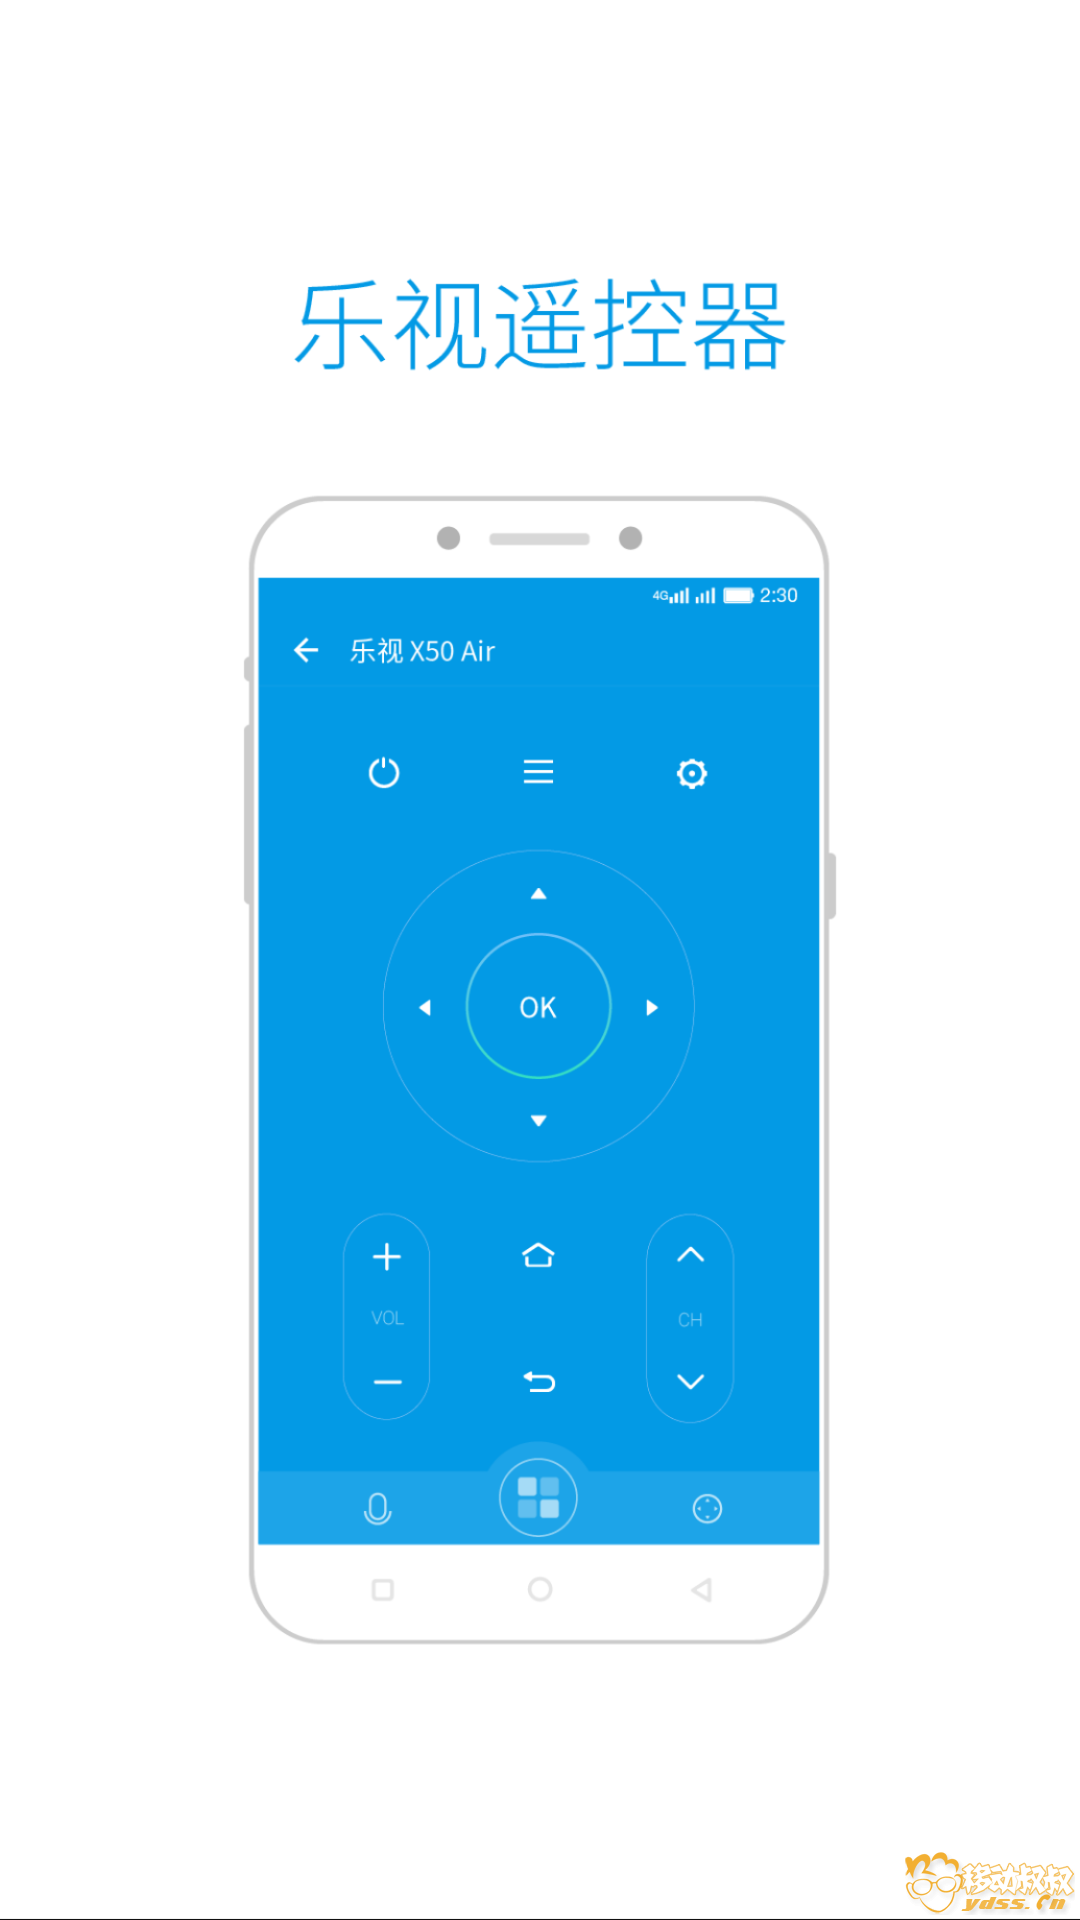 Screenshot_2015-01-01-00-05-35-698_com.letv.android.remotecontrol.png